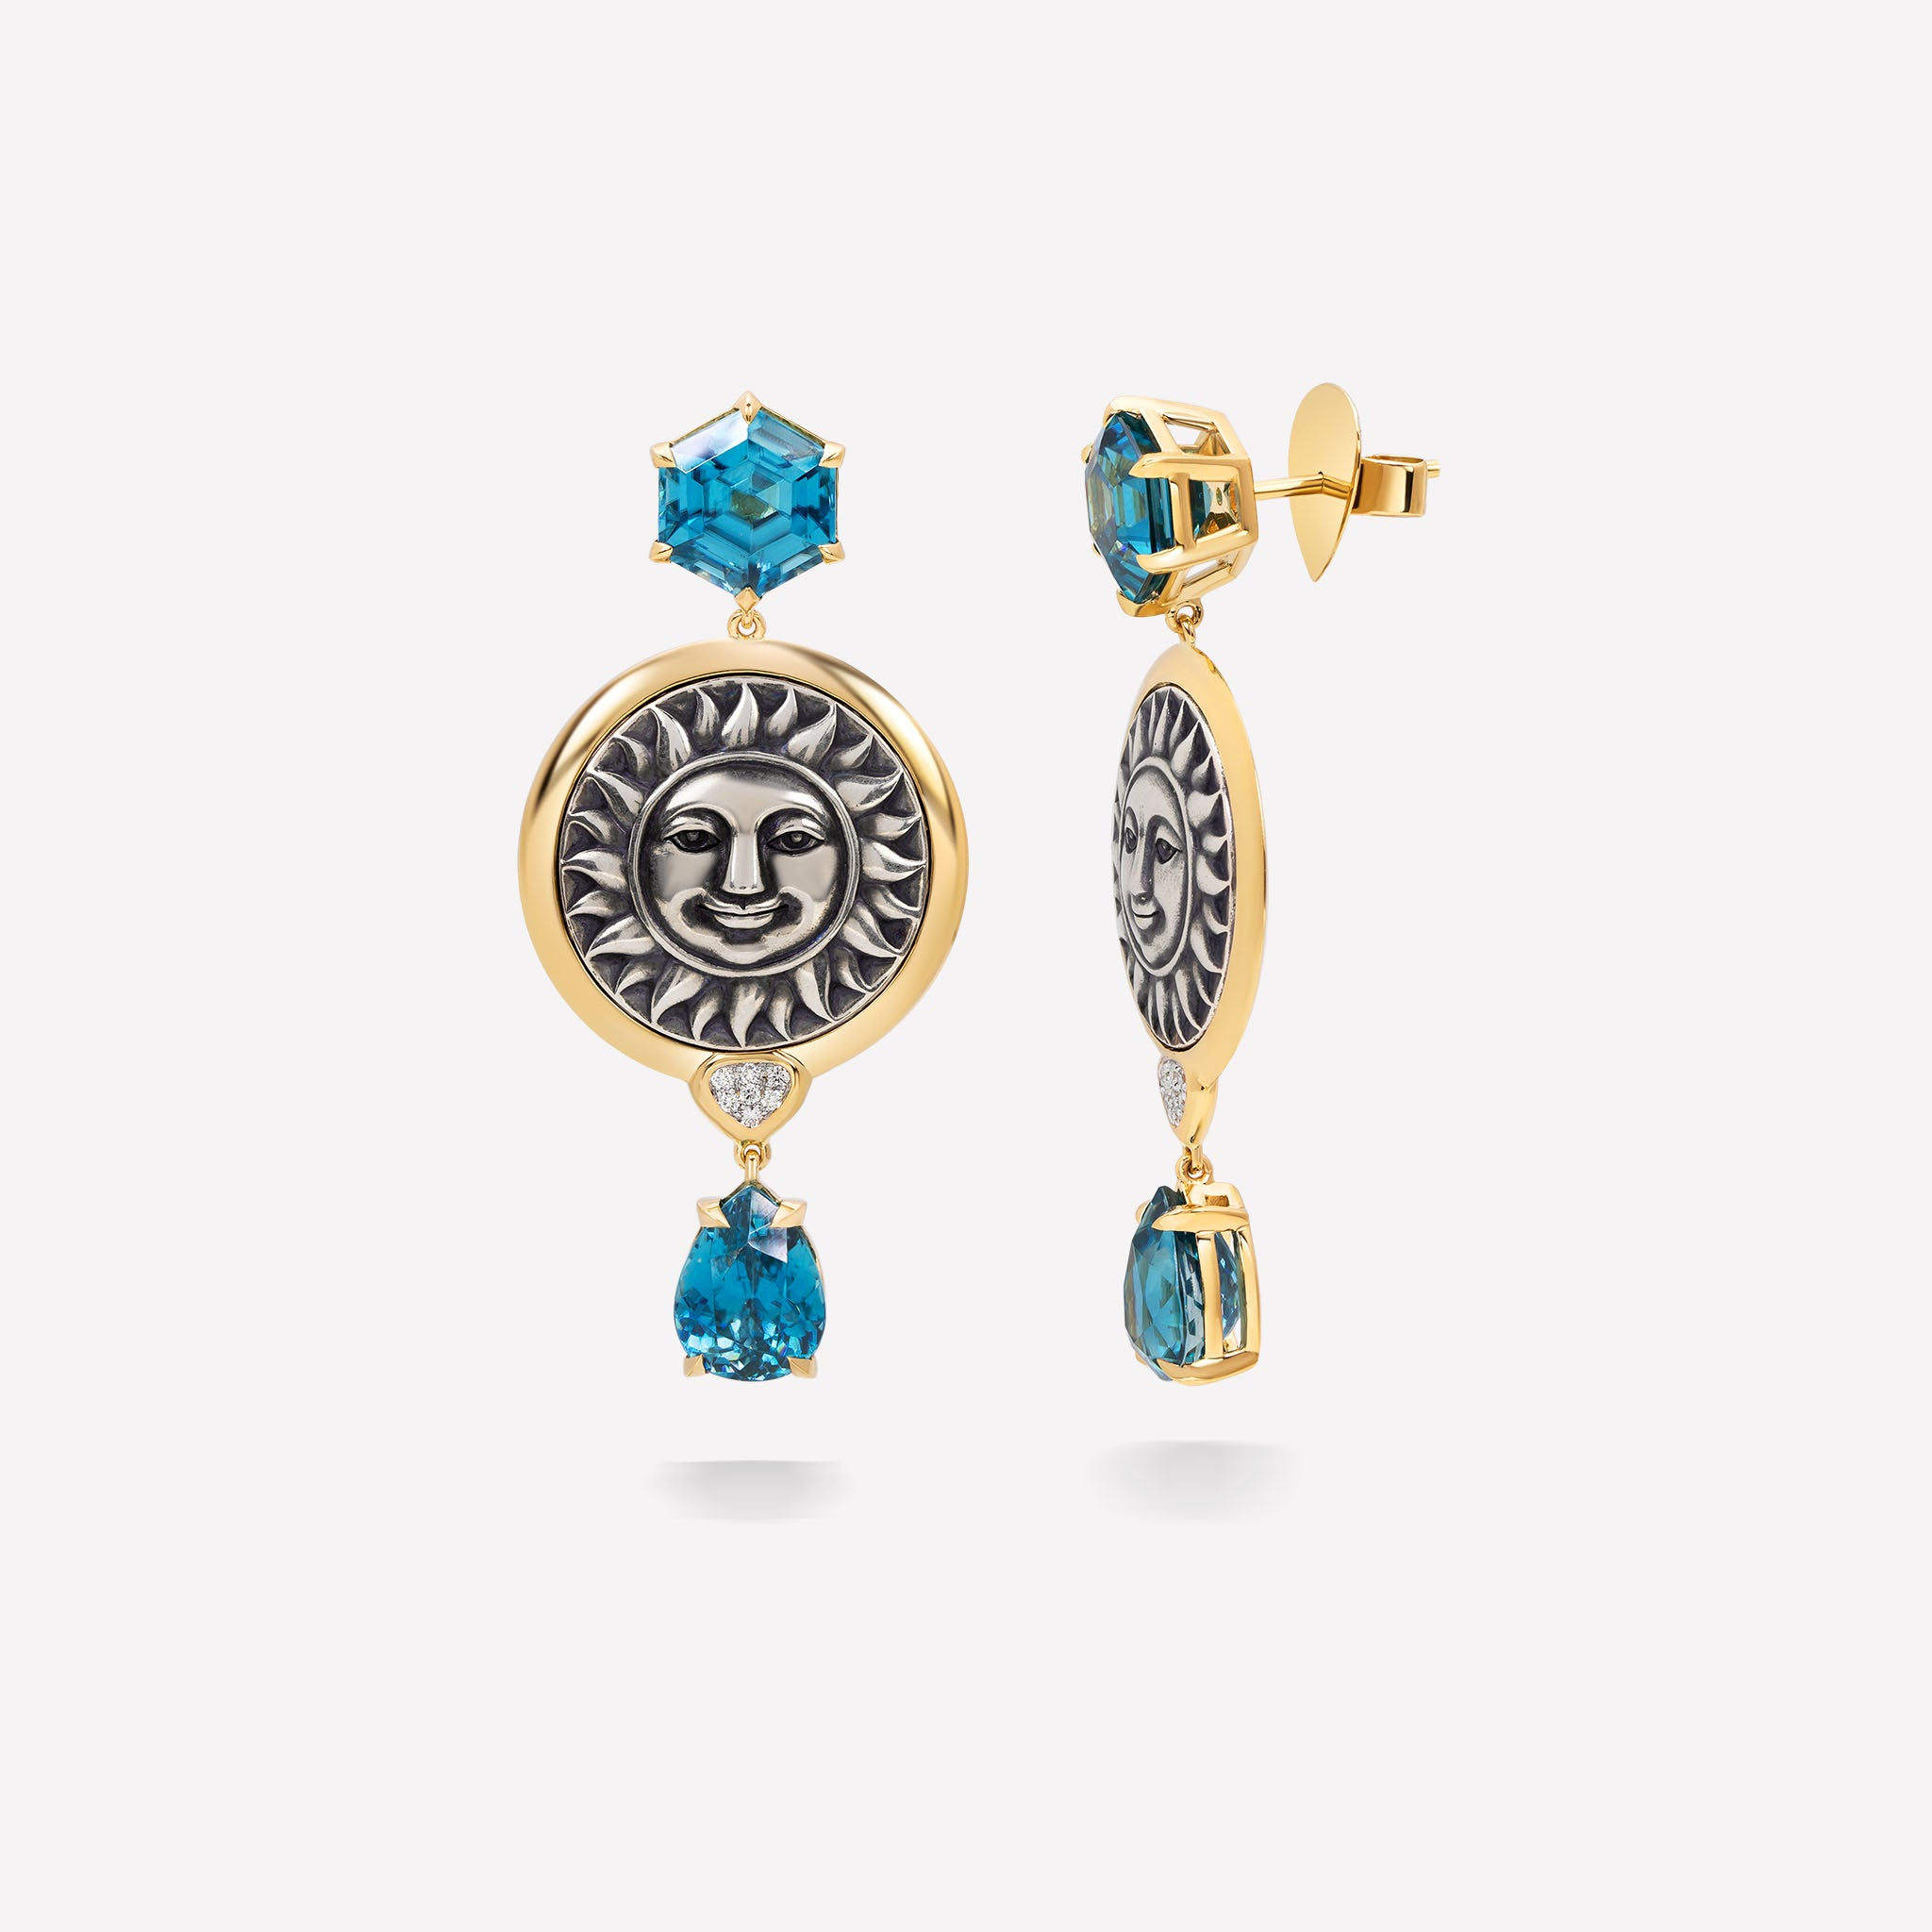 marinab.com, One of a kind Soleil Hortia Earrings